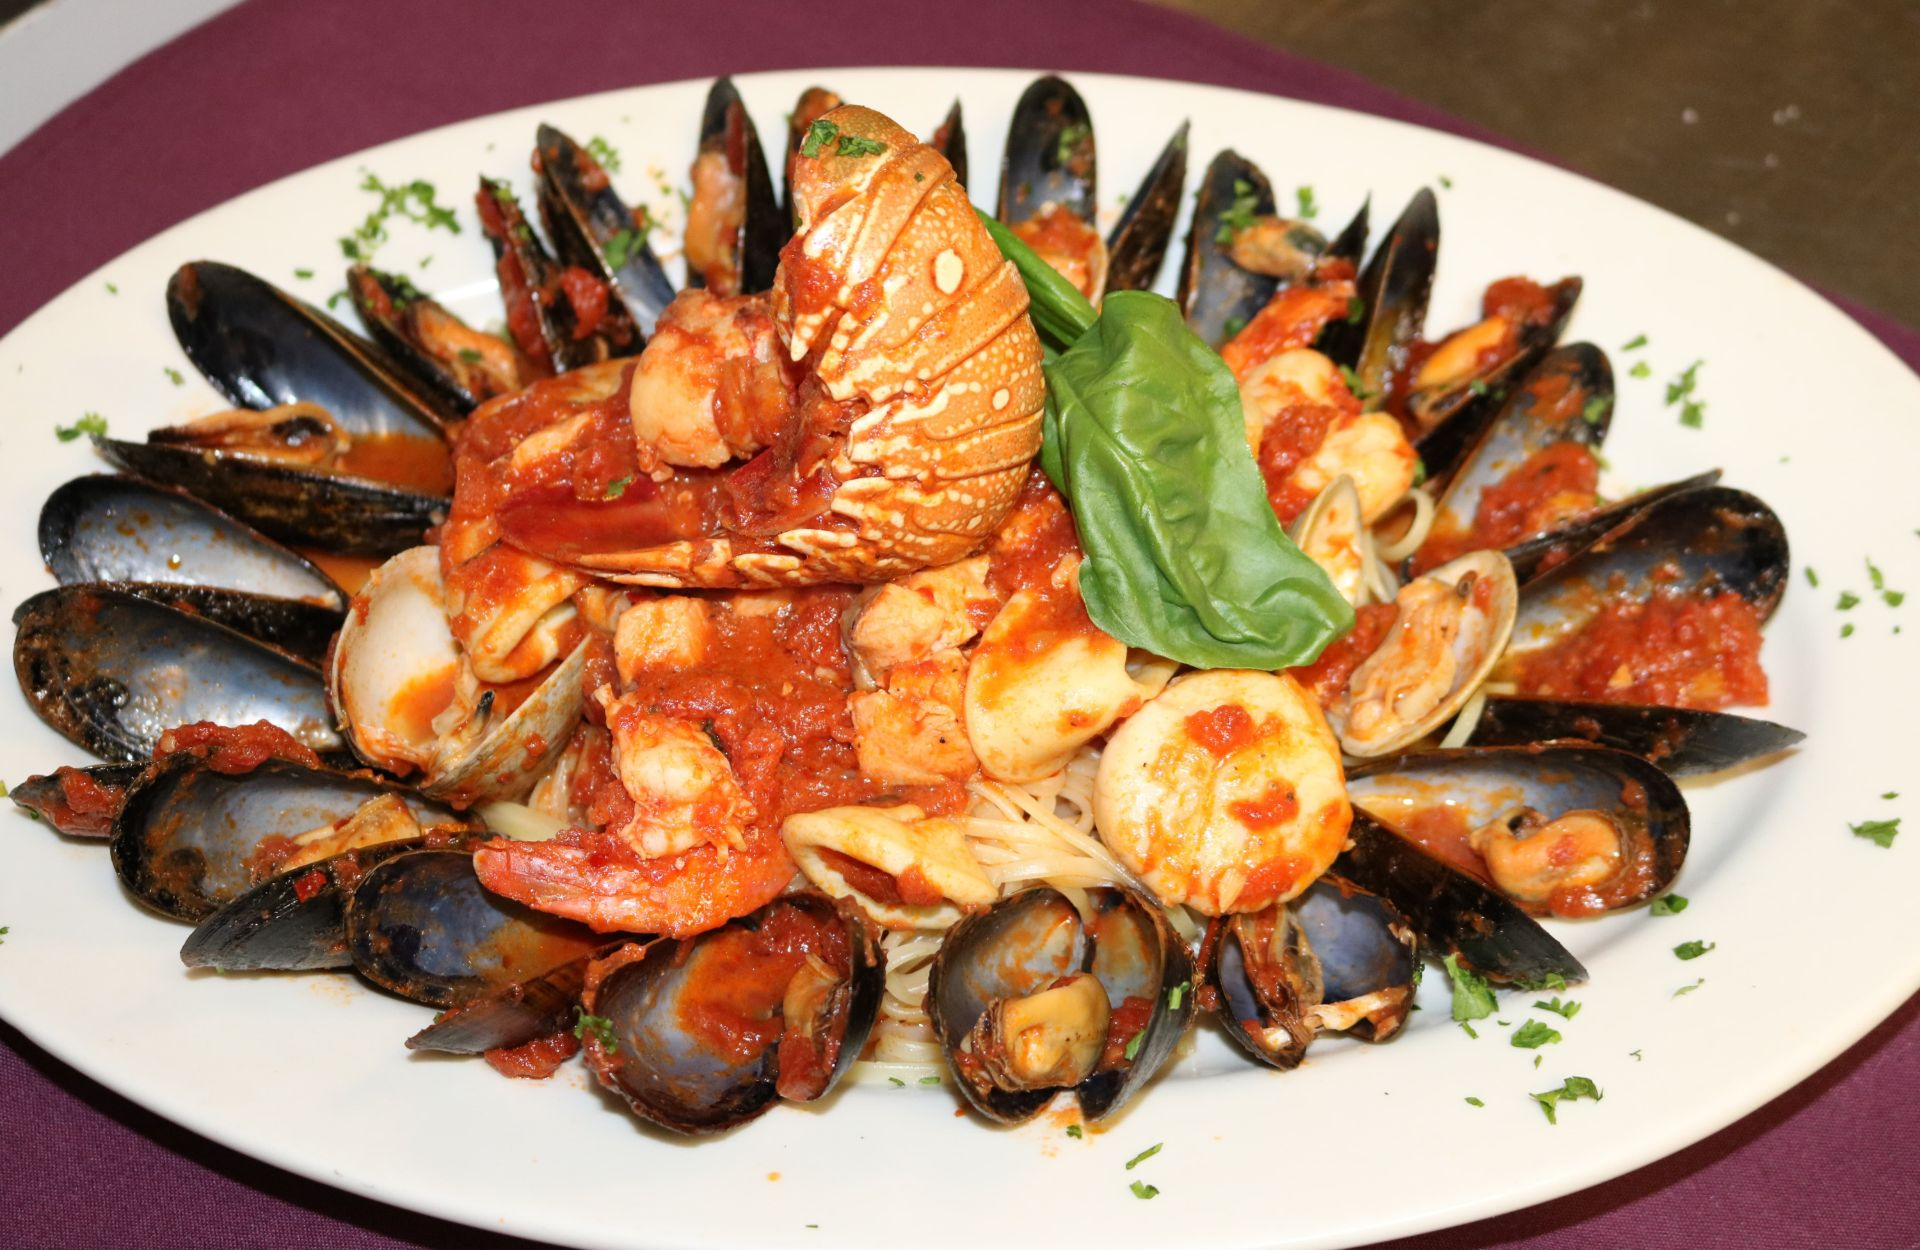 Mussles, calms, shrimp and lobster with marinara sauce and basil